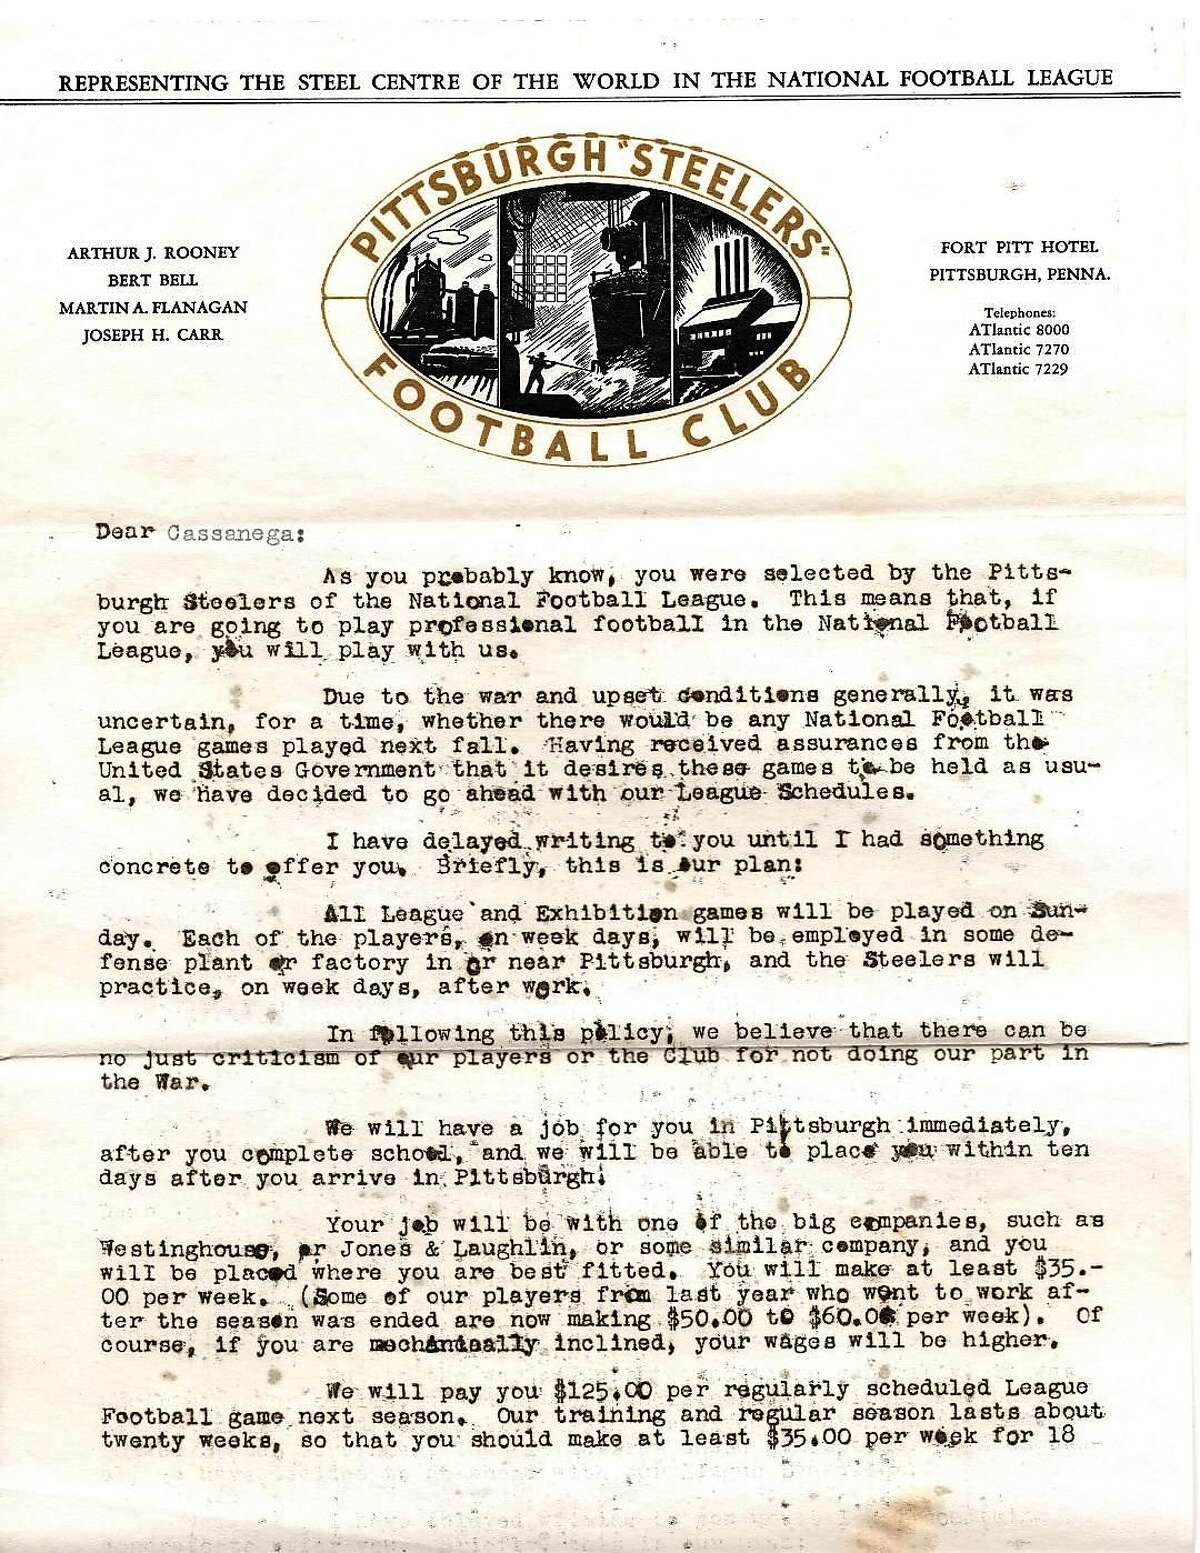 The first page of the letter Ken Casanega received from the Steelers after he was selected in the third round, No. 16 overall, of the 1942 NFL draft.